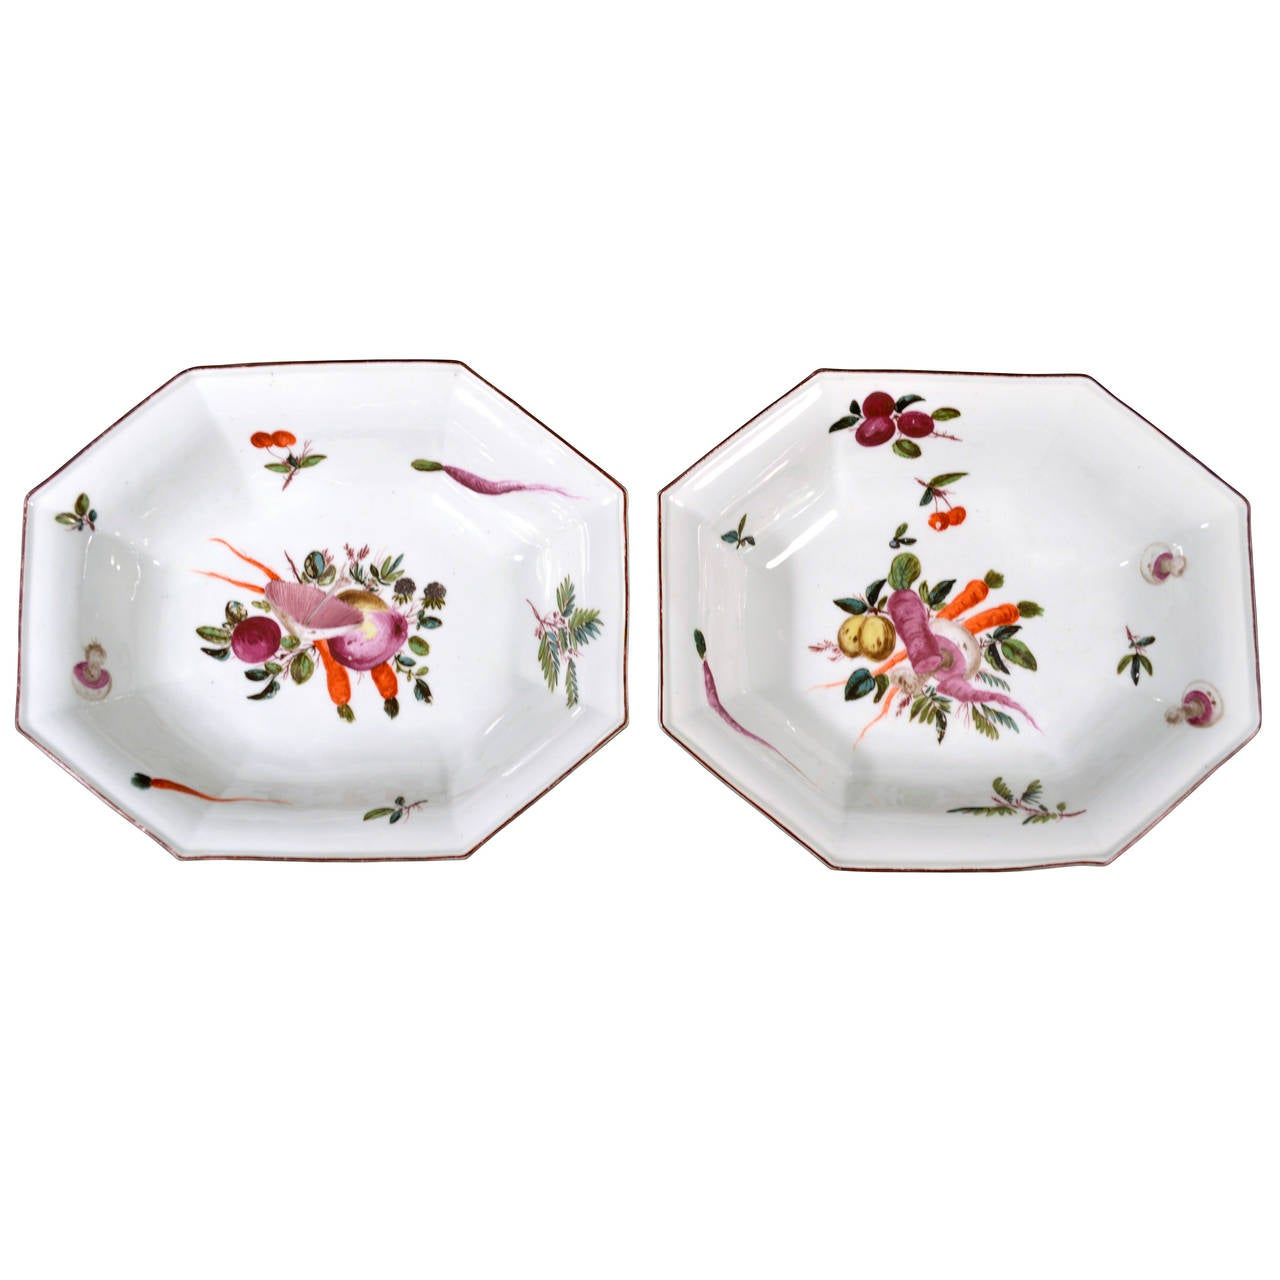 Chelsea Porcelain Dishes with Unusual Vegetable Decoration.